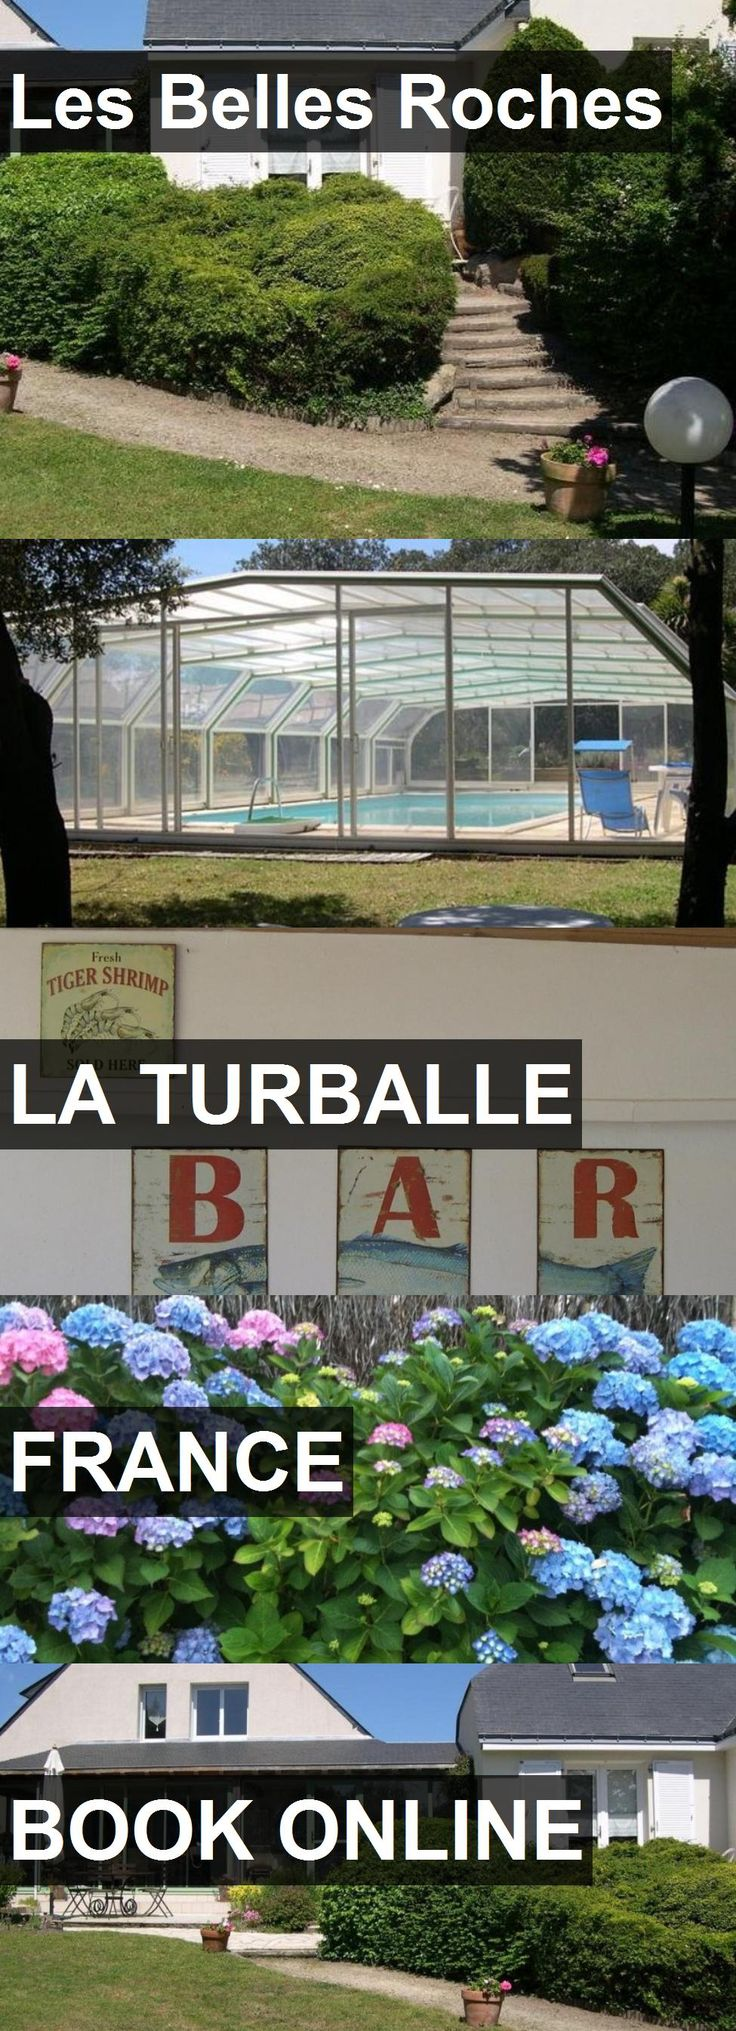 Hotel Les Belles Roches in La Turballe, France. For more information, photos, reviews and best prices please follow the link. #France #LaTurballe #LesBellesRoches #hotel #travel #vacation